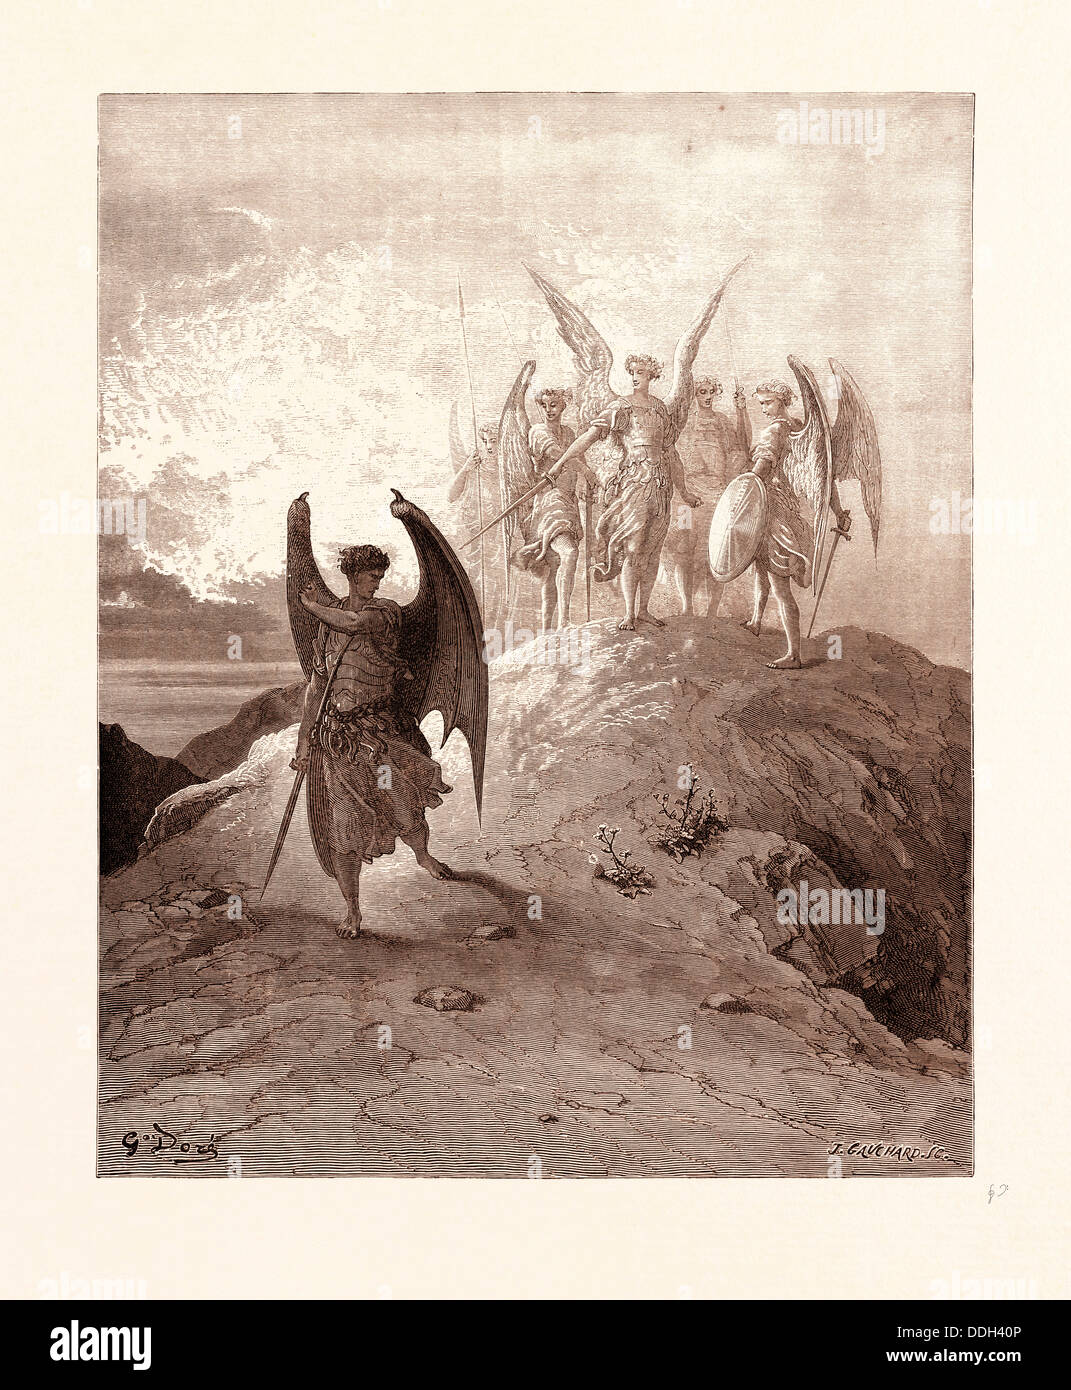 SATAN VANQUISHED, BY GUSTAVE DORE. Dore, 1832 - 1883, French. Engraving for Paradise Lost by Milton. 1870, Art, - Stock Image